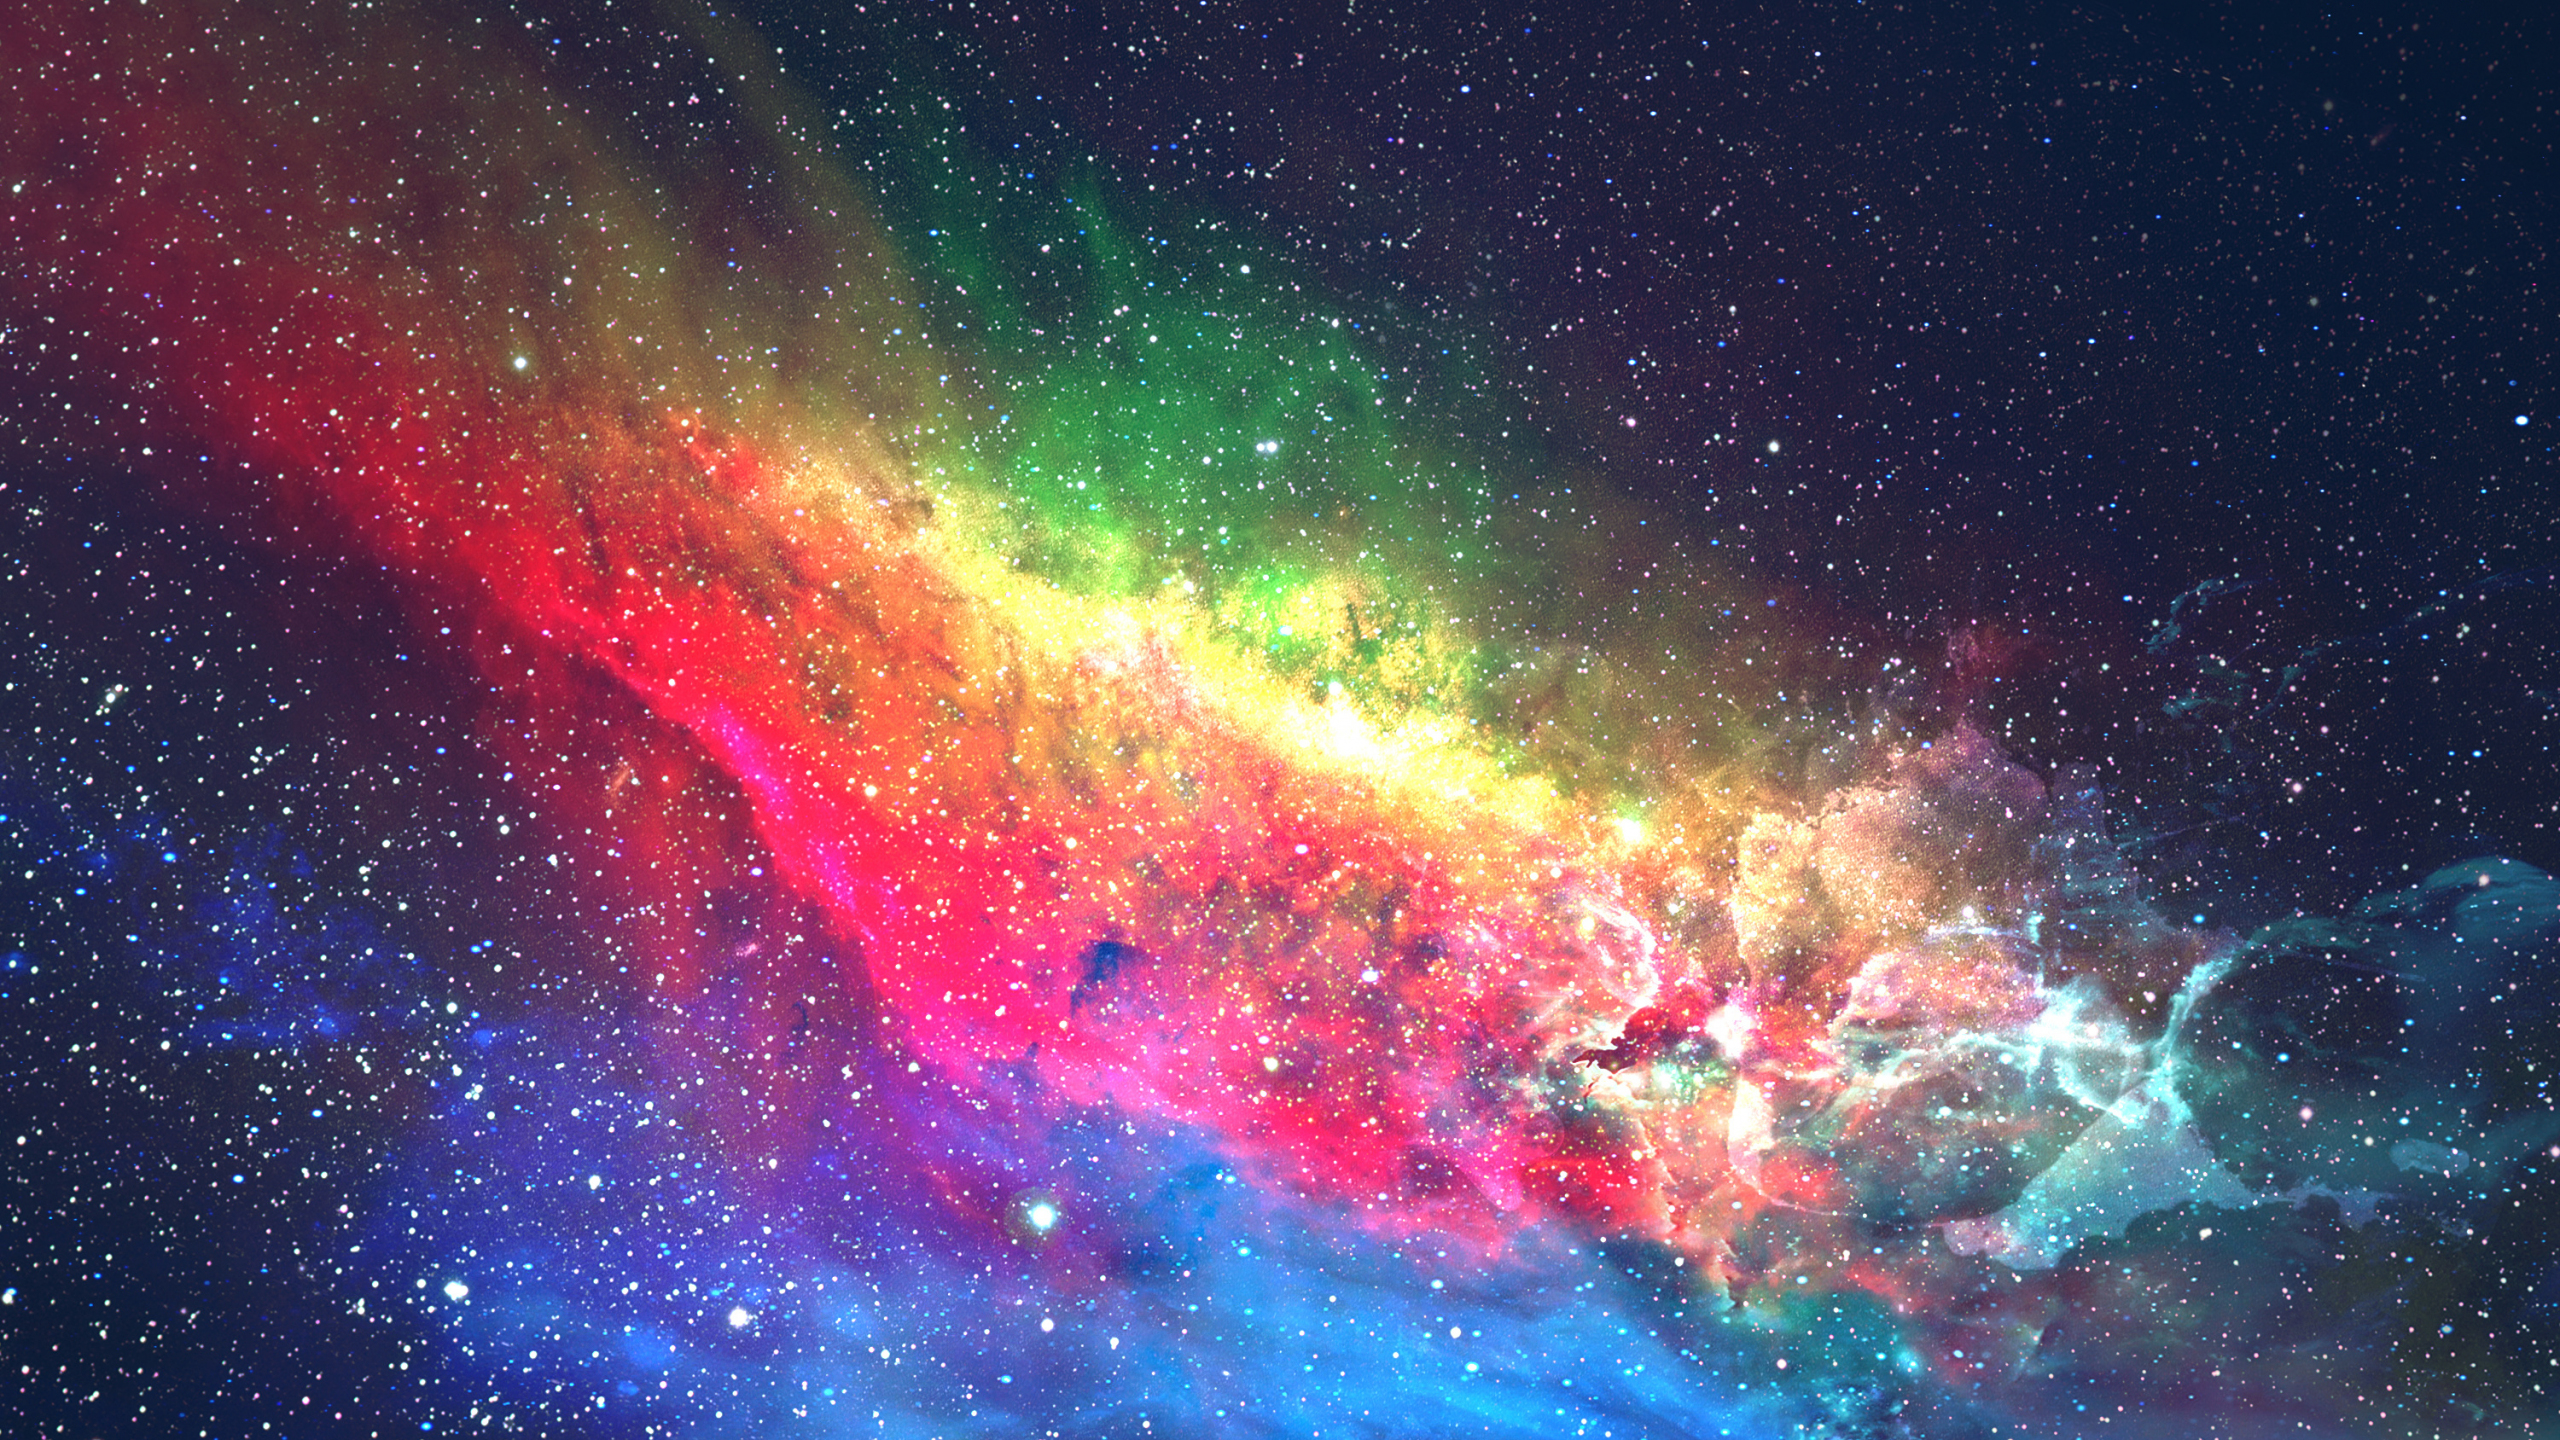 Download 2560x1440 wallpaper colorful galaxy space - Colorful galaxy wallpaper ...